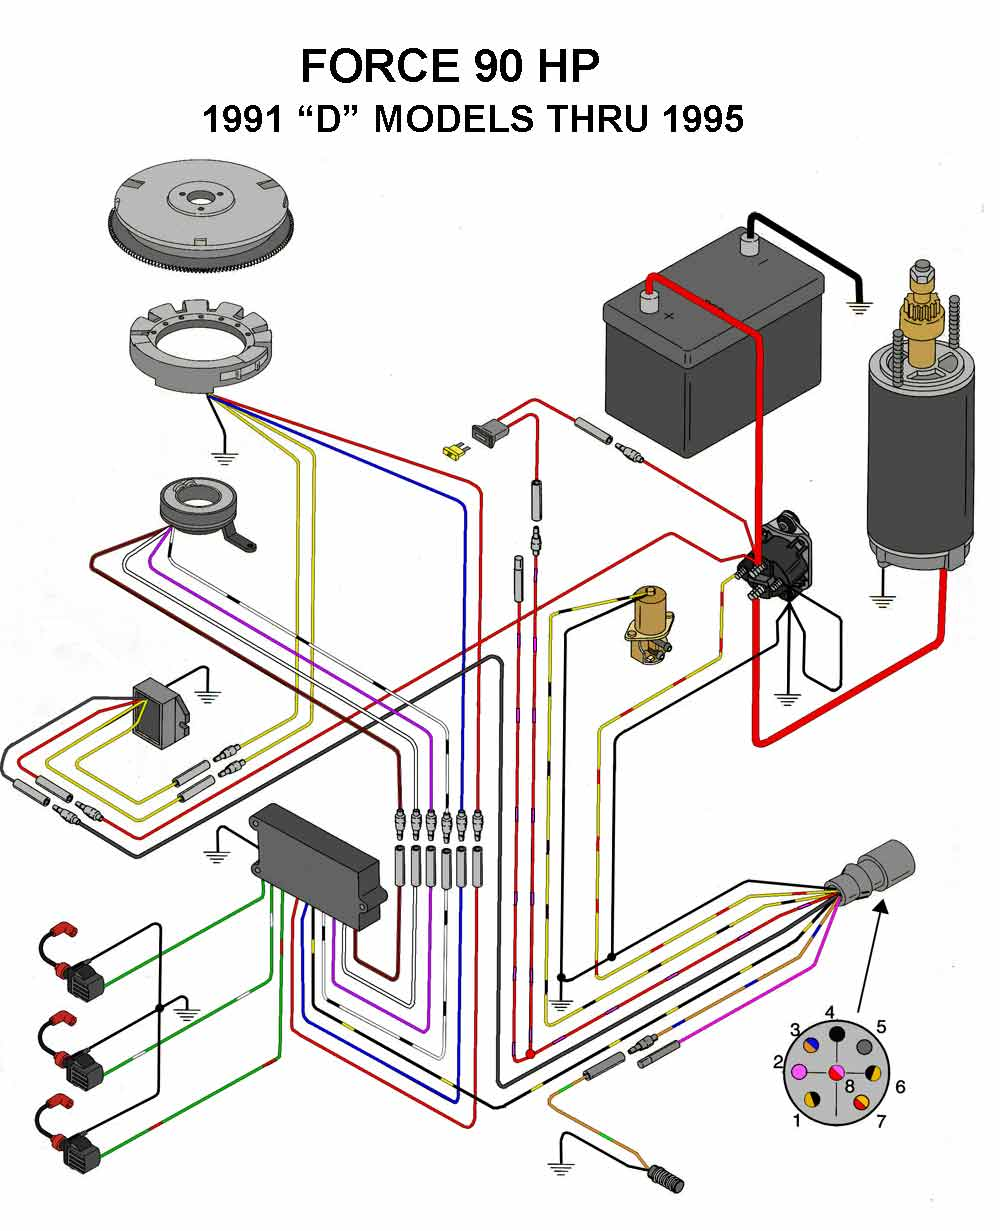 force outboard ignition wiring diagram wiring diagram third levelmastertech marine chrysler \u0026 force outboard wiring diagrams ford ignition wiring diagram force 120 \u0026 125